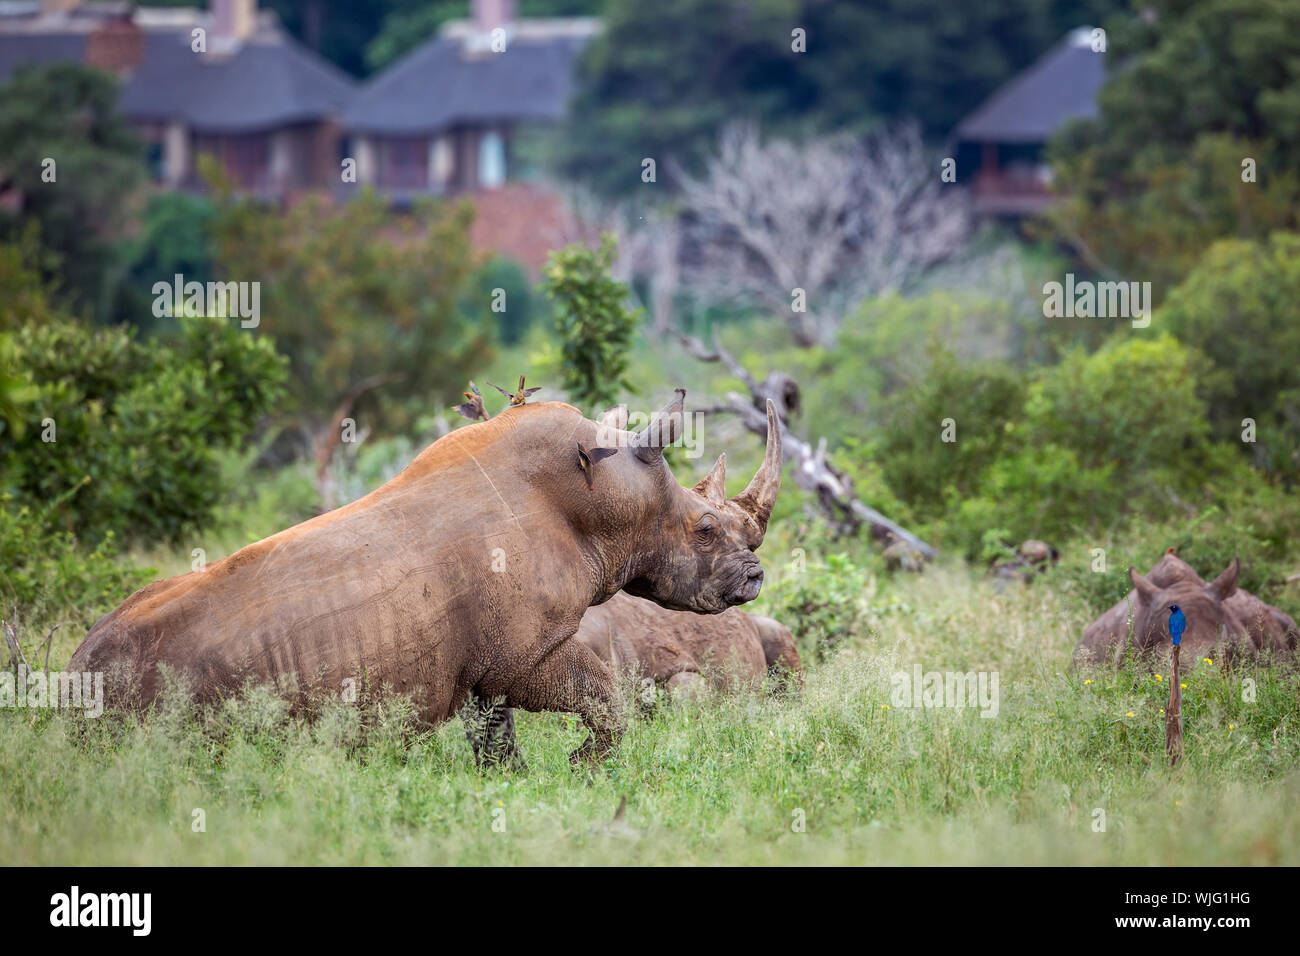 Three Southern white rhinoceros lyng down close to houses in Kruger National park, South Africa ; Specie Ceratotherium simum simum family of Rhinocero - Stock Photo